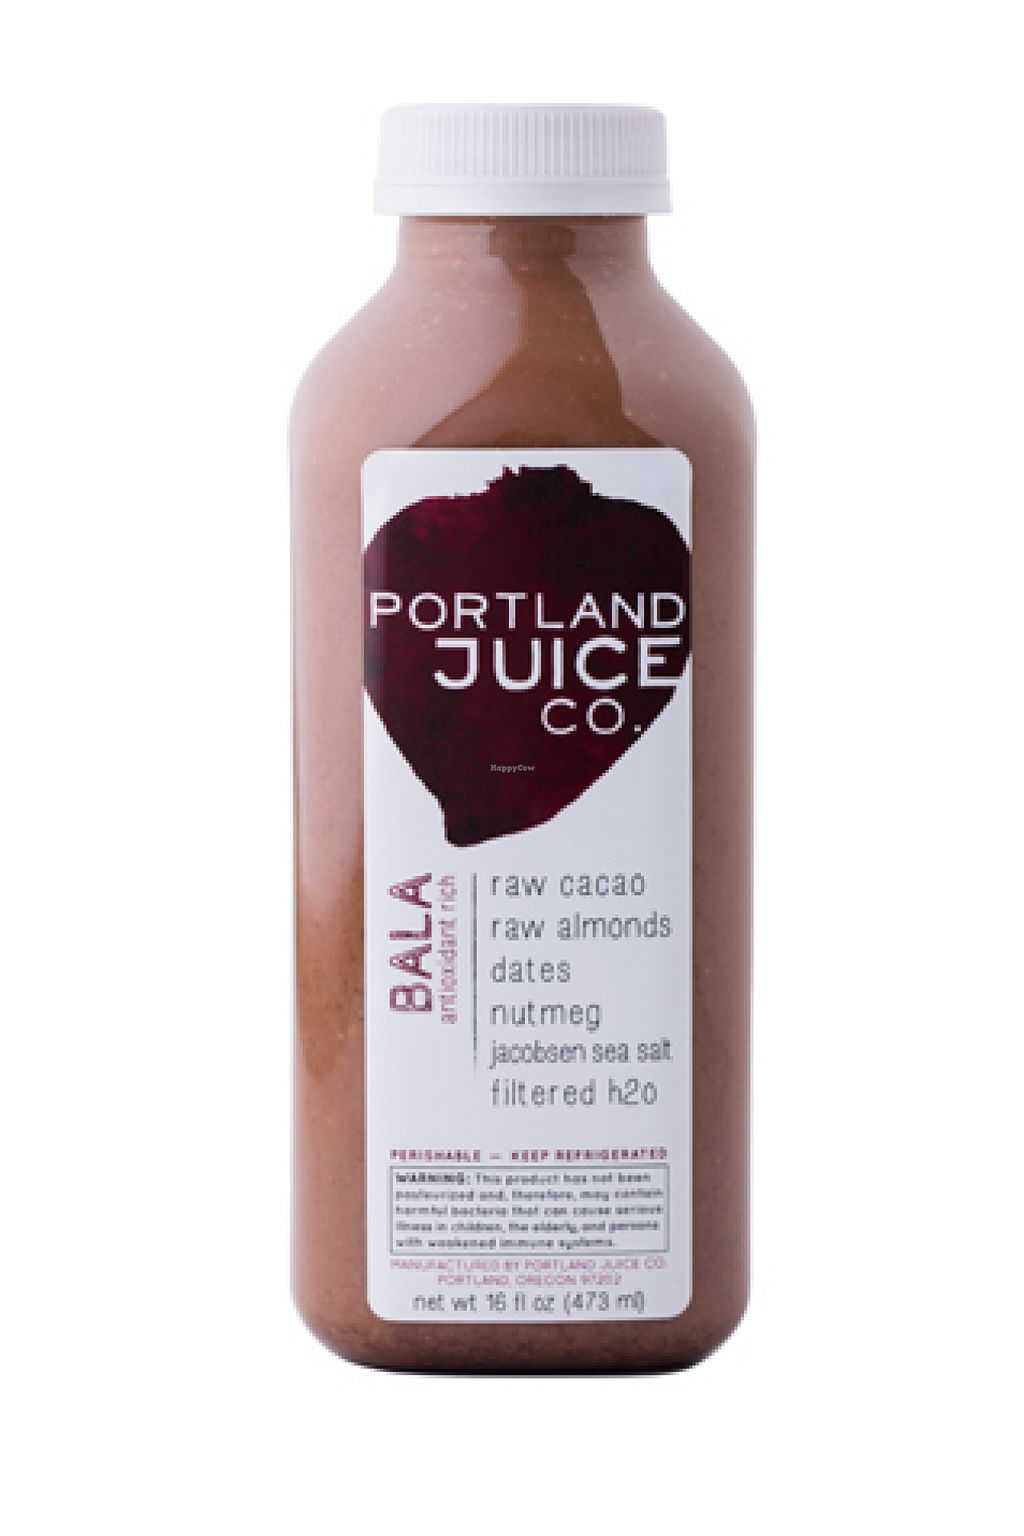 """Photo of Portland Juice Company  by <a href=""""/members/profile/Arthousebill"""">Arthousebill</a> <br/>Yummy <br/> June 26, 2016  - <a href='/contact/abuse/image/75655/156312'>Report</a>"""